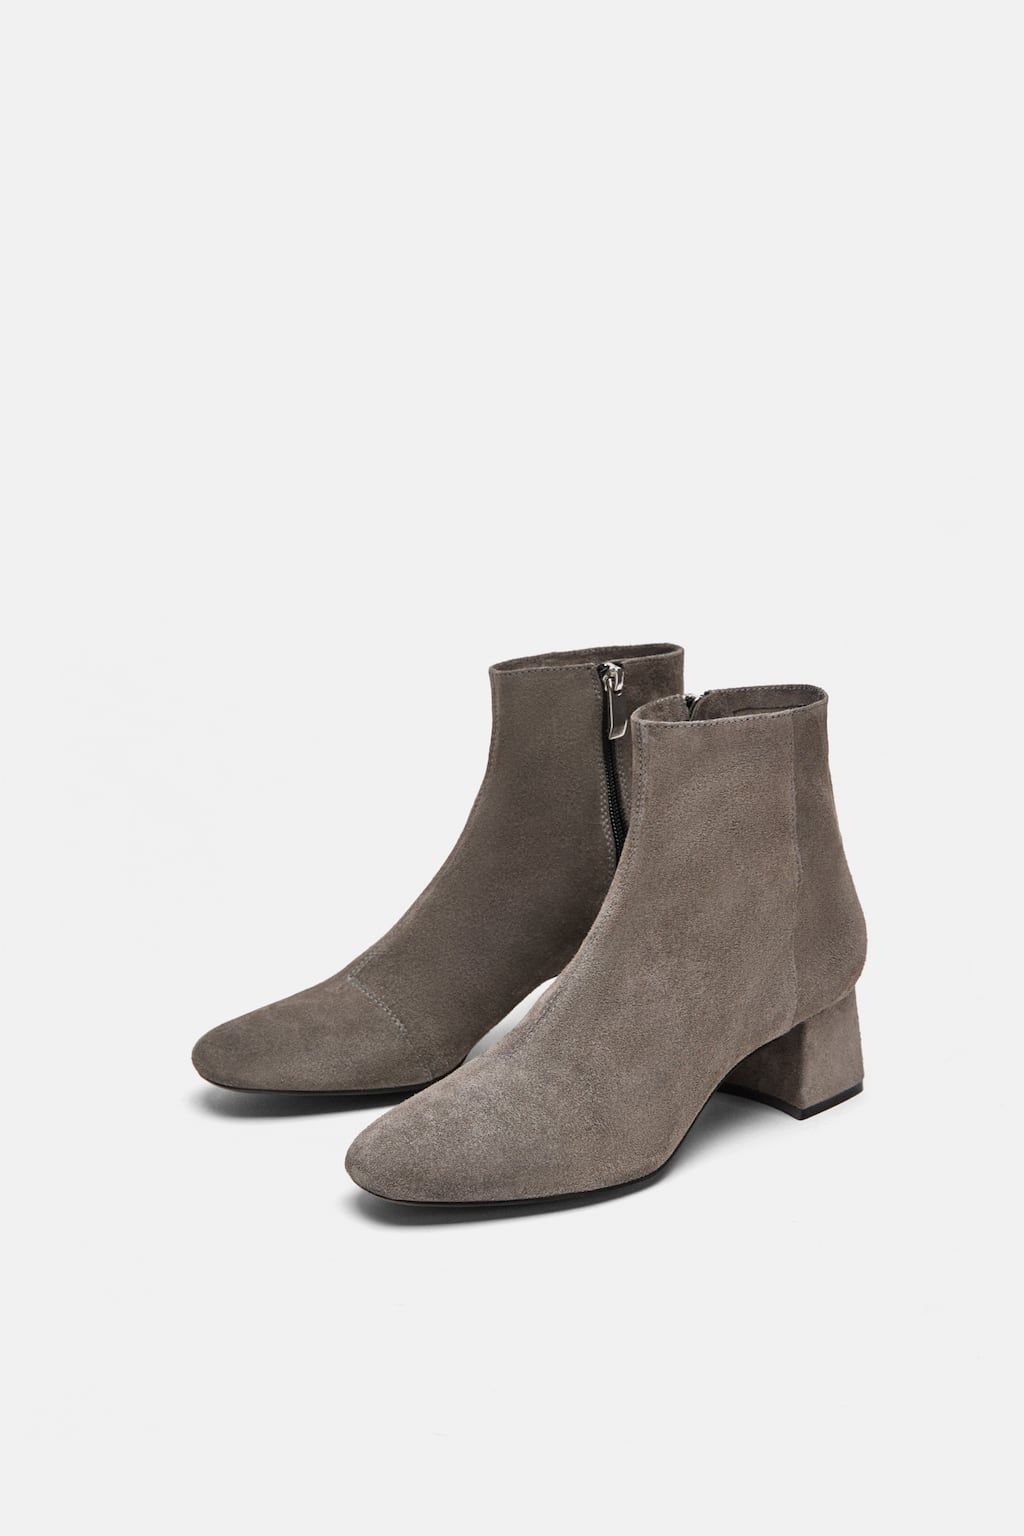 36b83a48e60 Image 1 of SPLIT SUEDE MID-HEEL ANKLE BOOTS from Zara